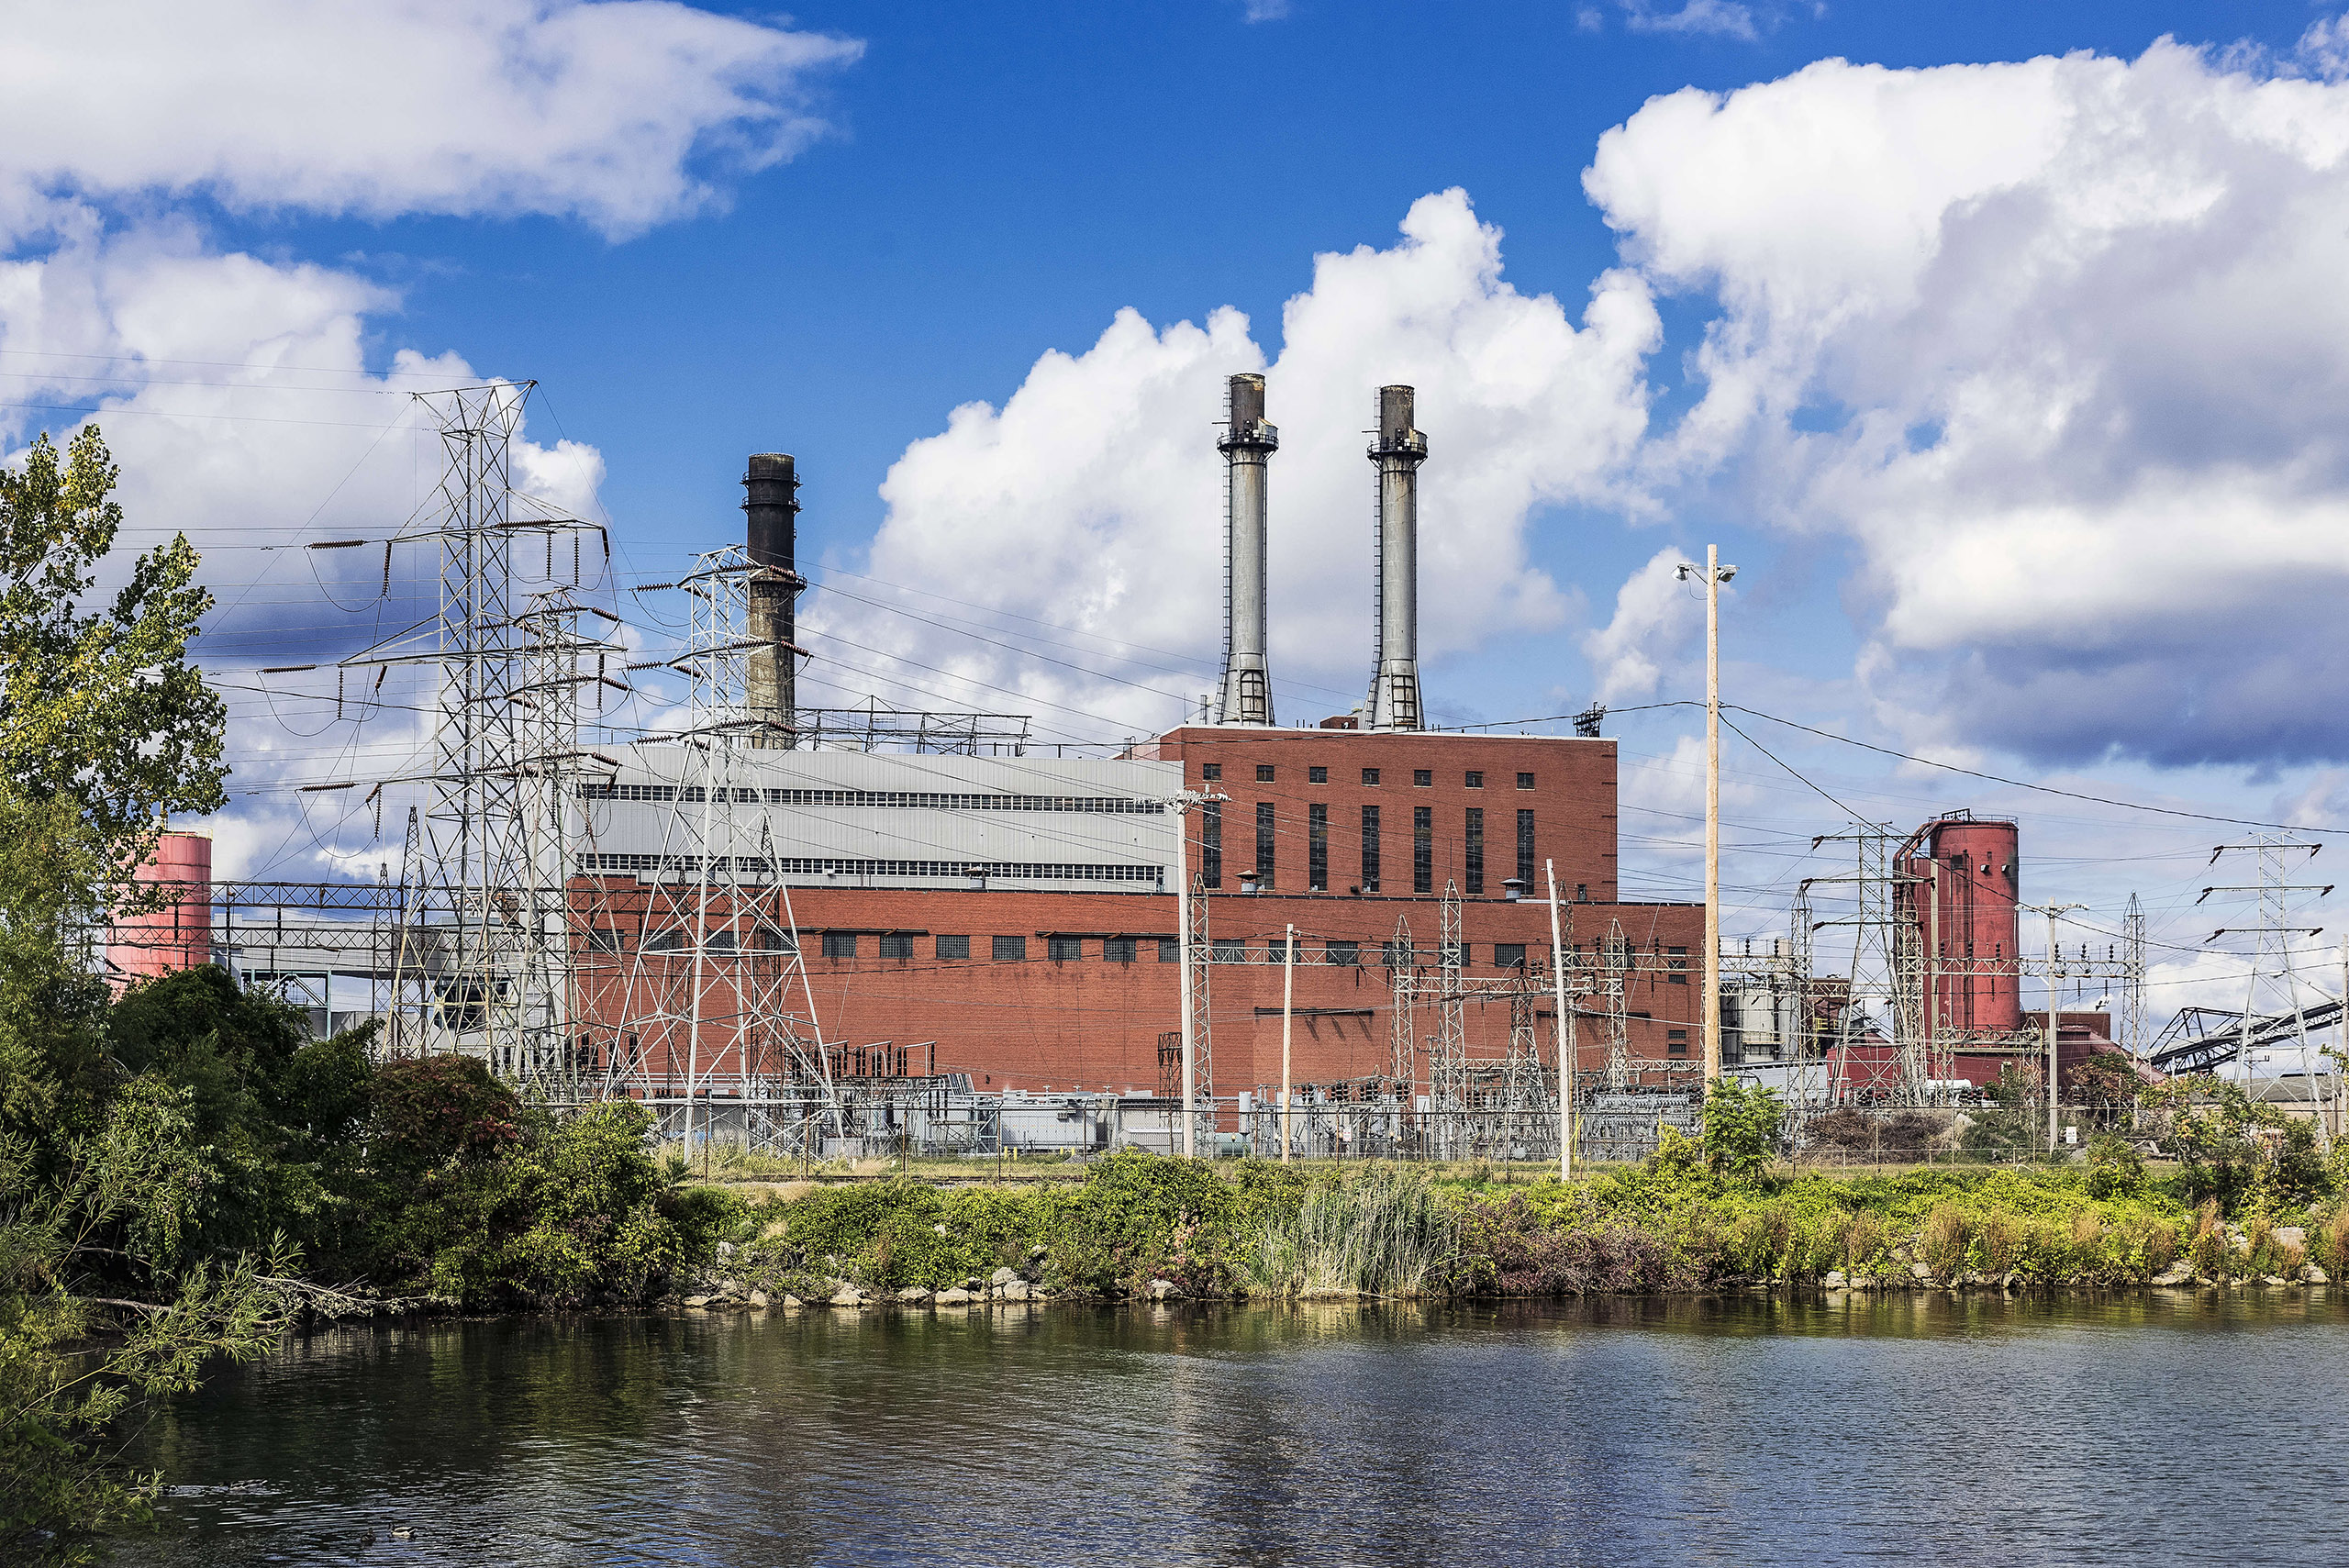 A NRG owned coal fired energy facility that plans to convert to a natural gas facility in Dunkirk, NY.